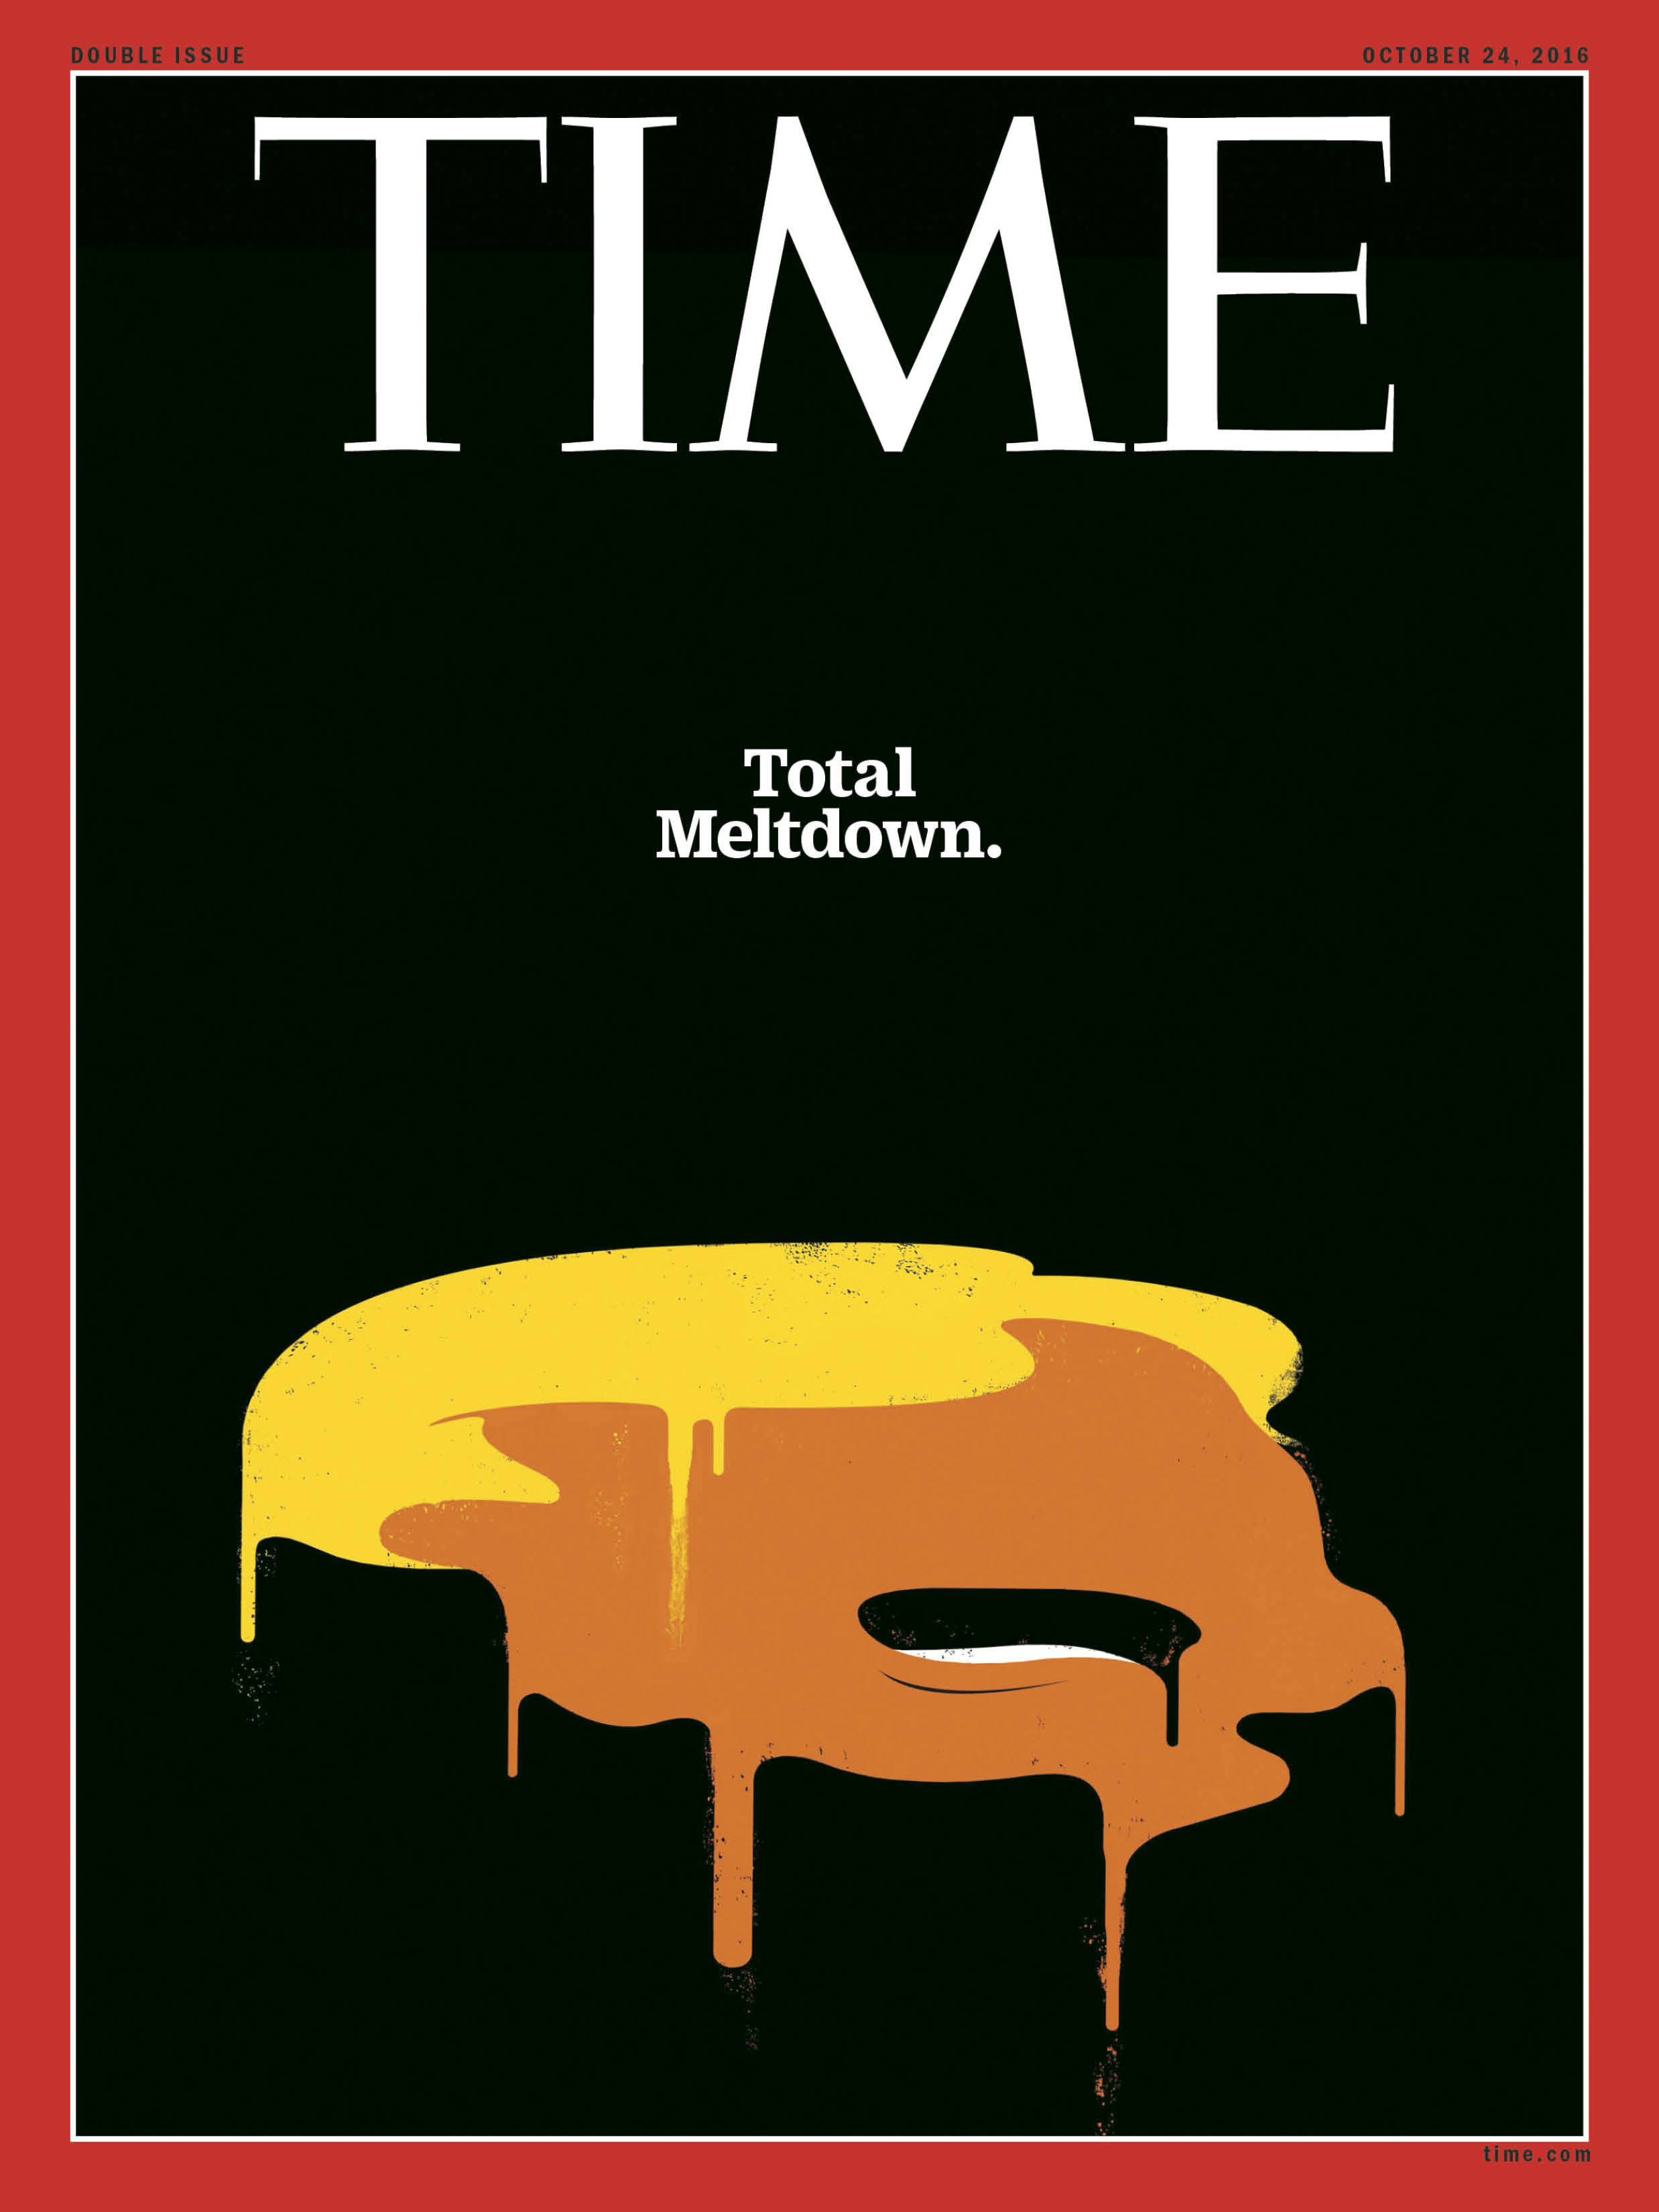 The Oct. 24, 2016, issue of TIME